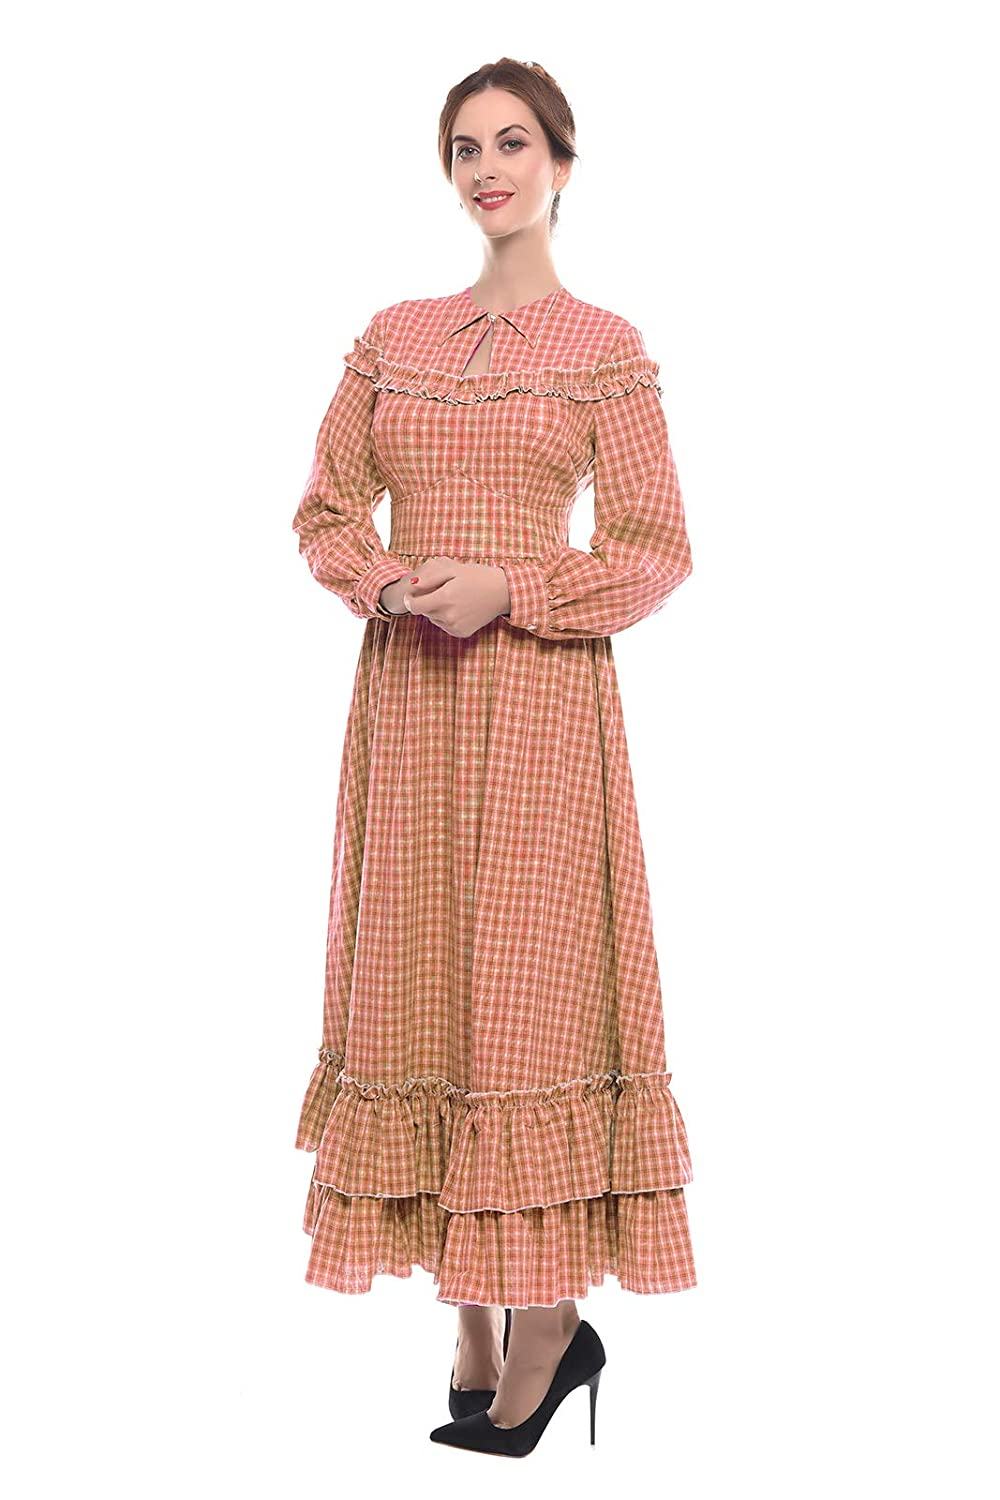 Old Fashioned Dresses | Old Dress Styles NSPSTT Women Girls American Pioneer Colonial Dress Prairie Costume $53.99 AT vintagedancer.com